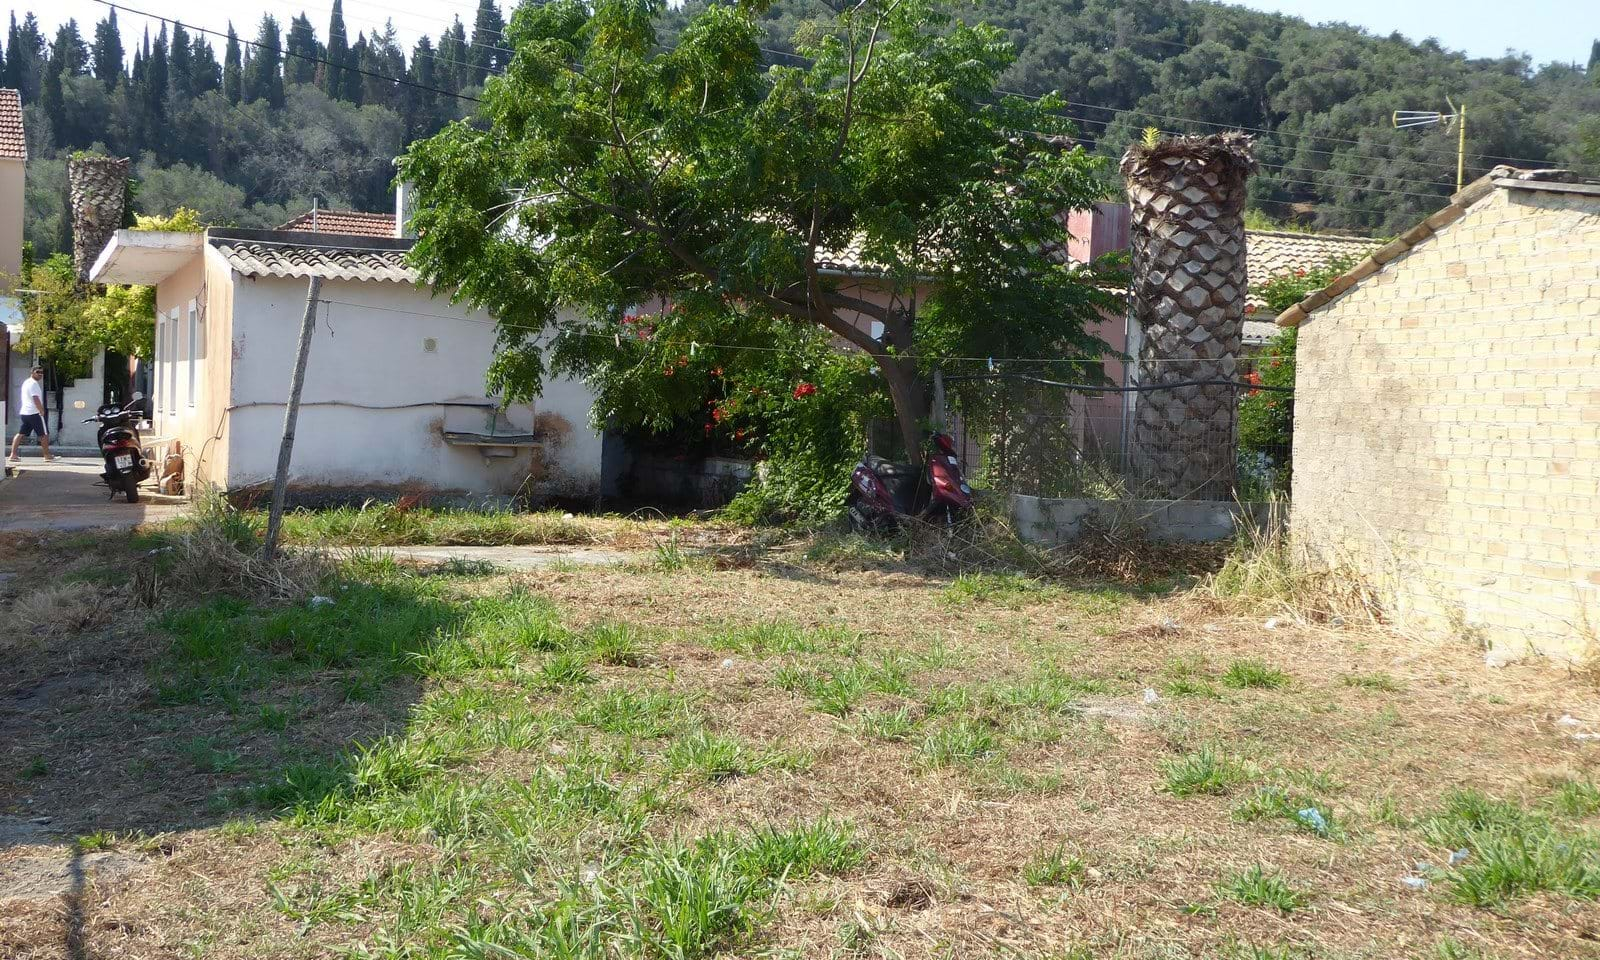 Property for sale near the sea in Greece